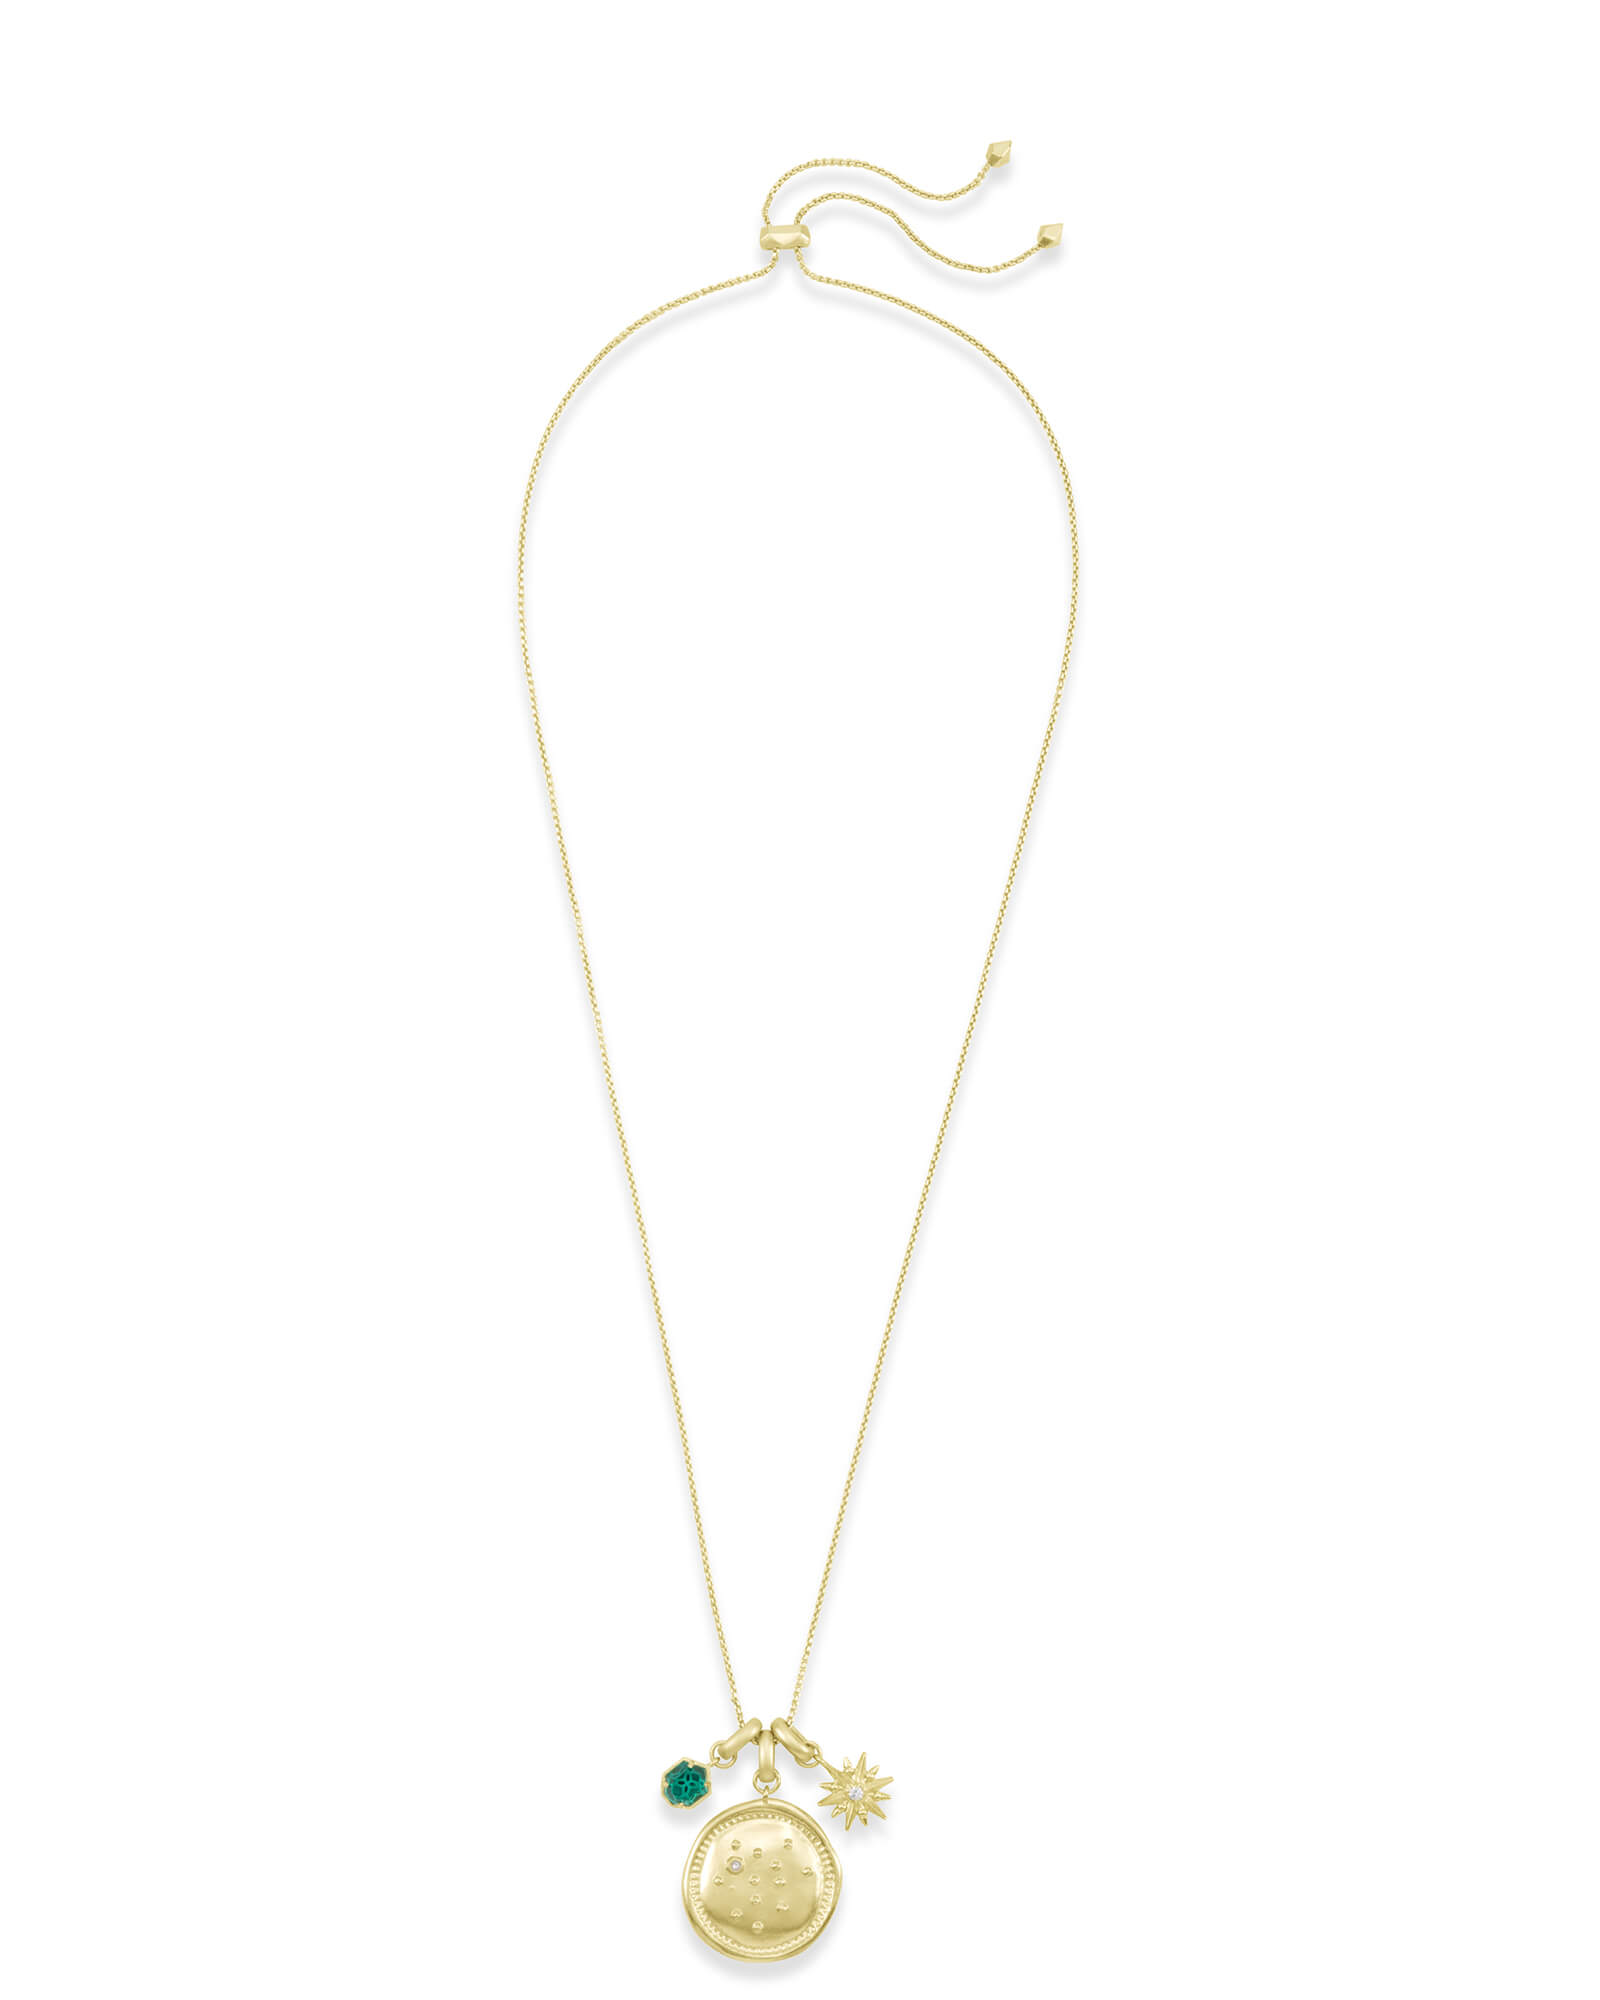 December Sagittarius Charm Necklace Set in Gold